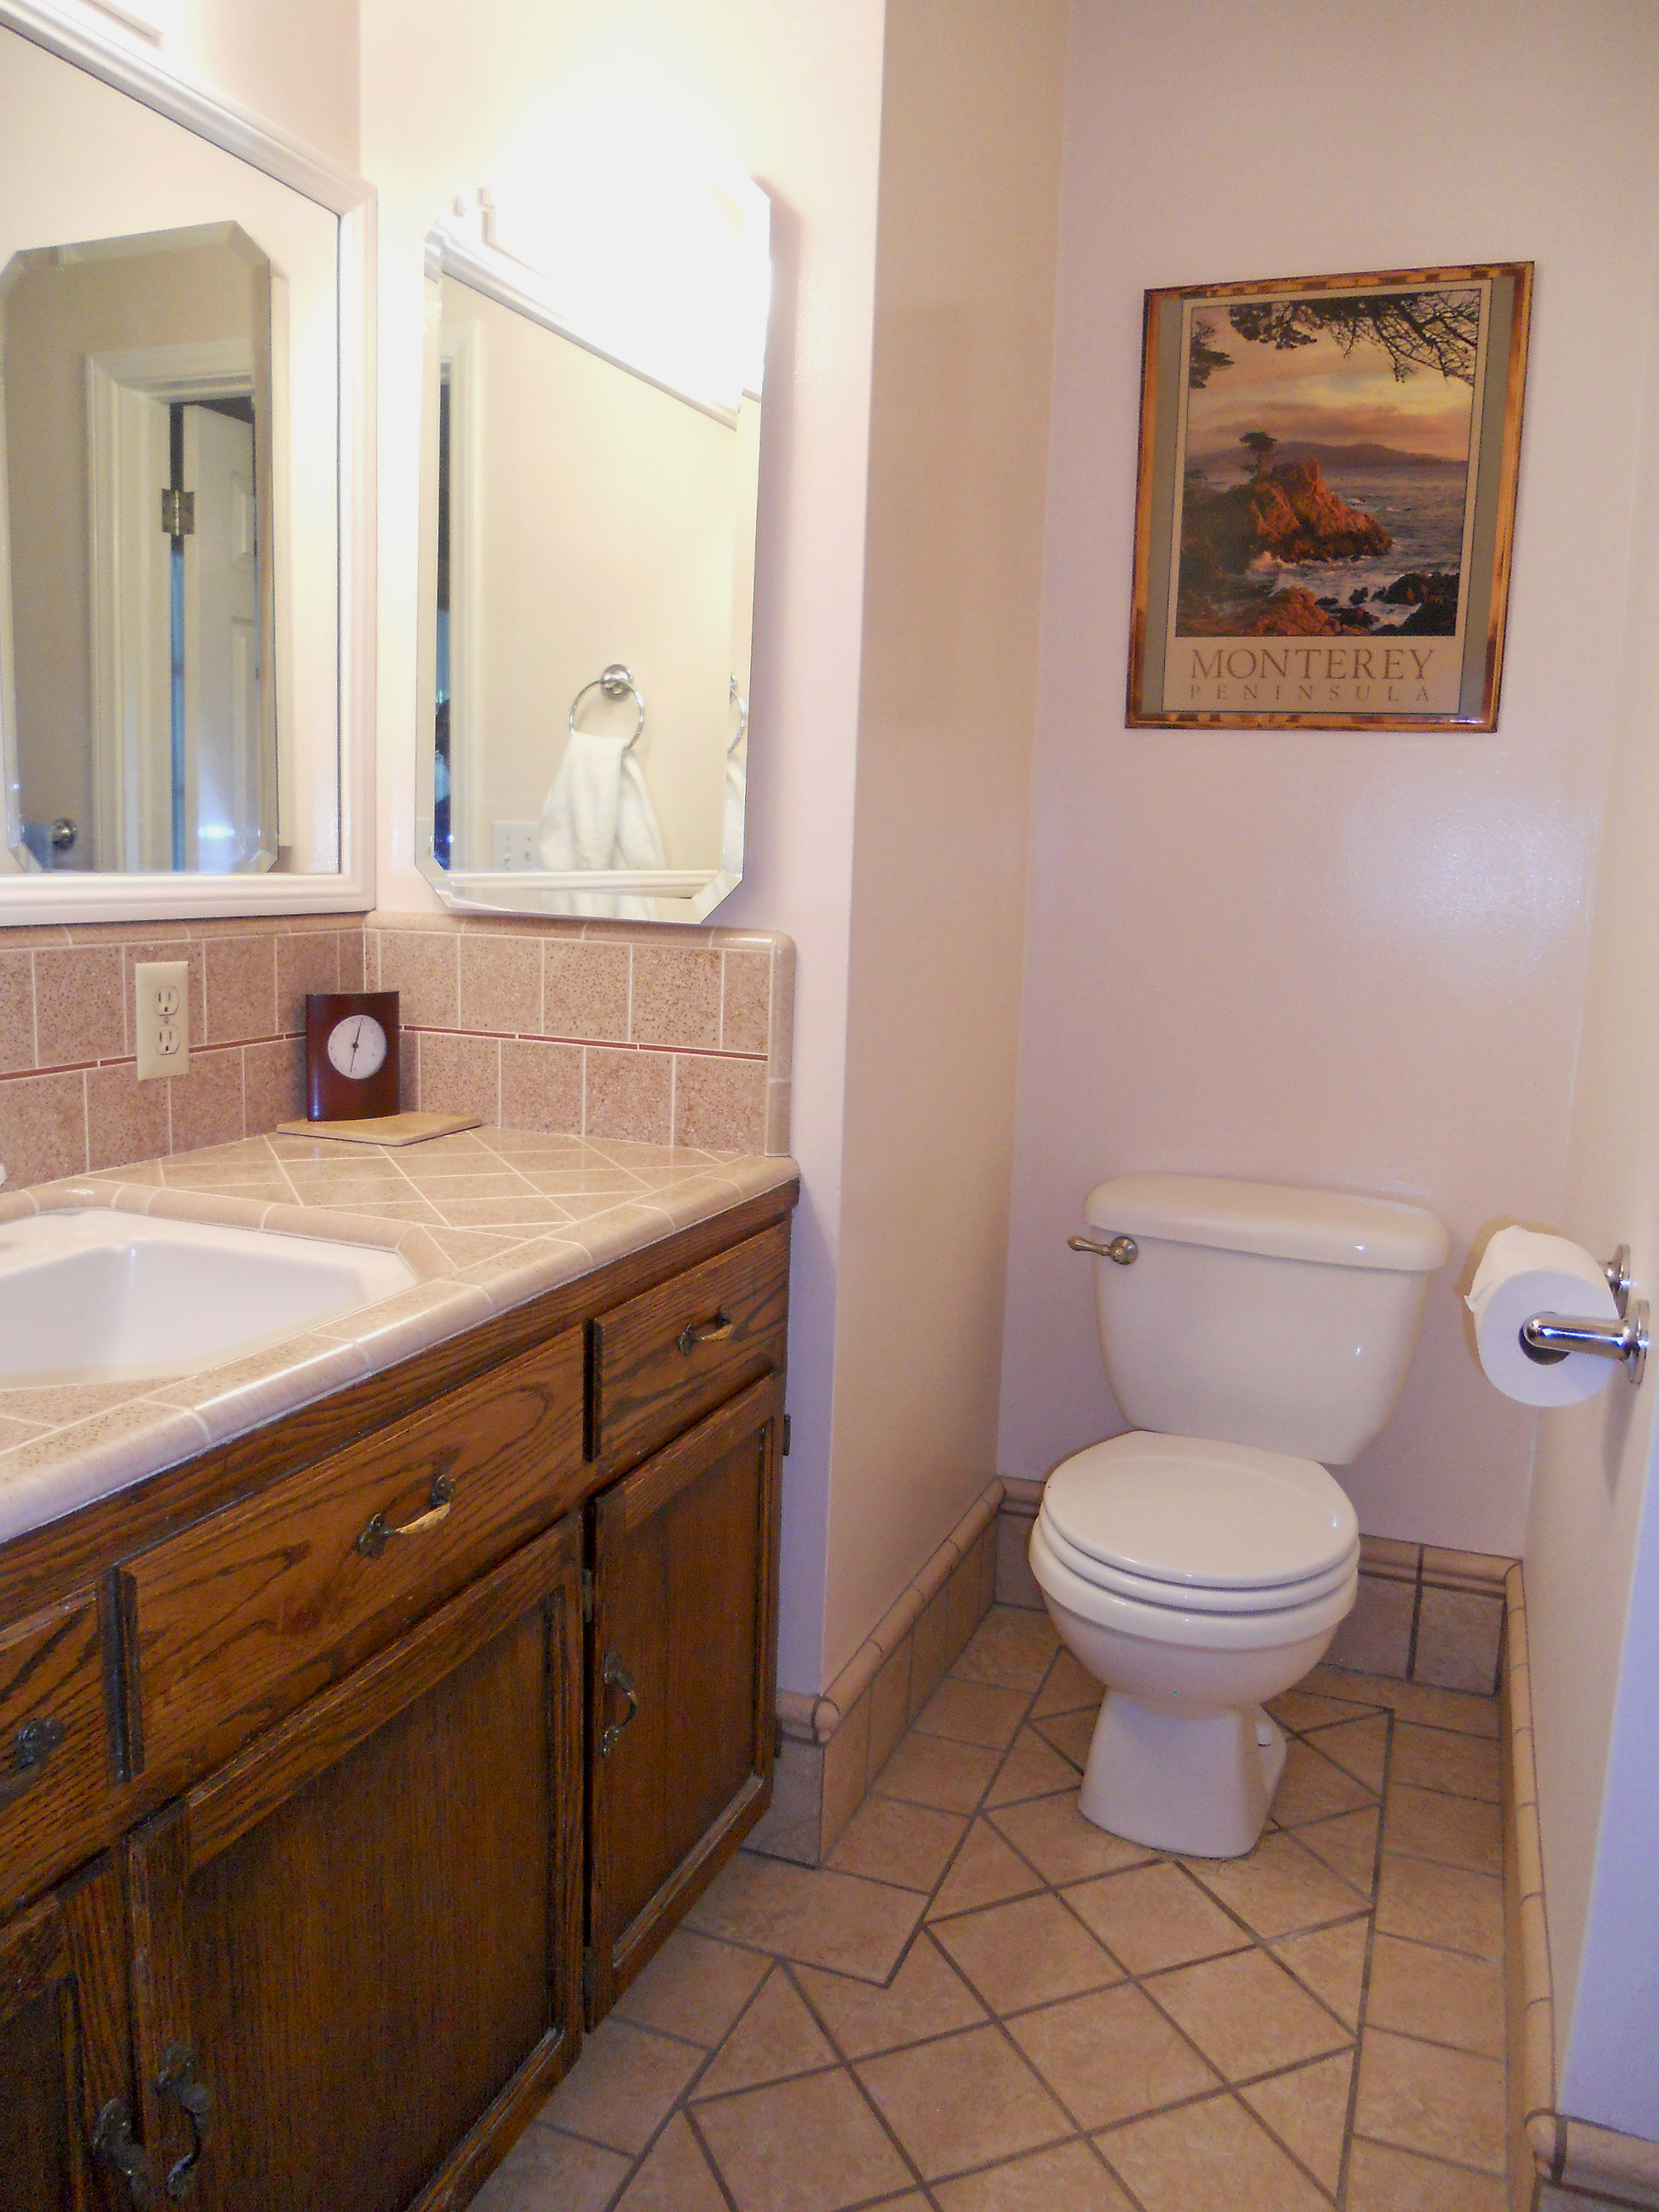 Private master bathroom with original counter top tile in like-new condition, and newer tile flooring.